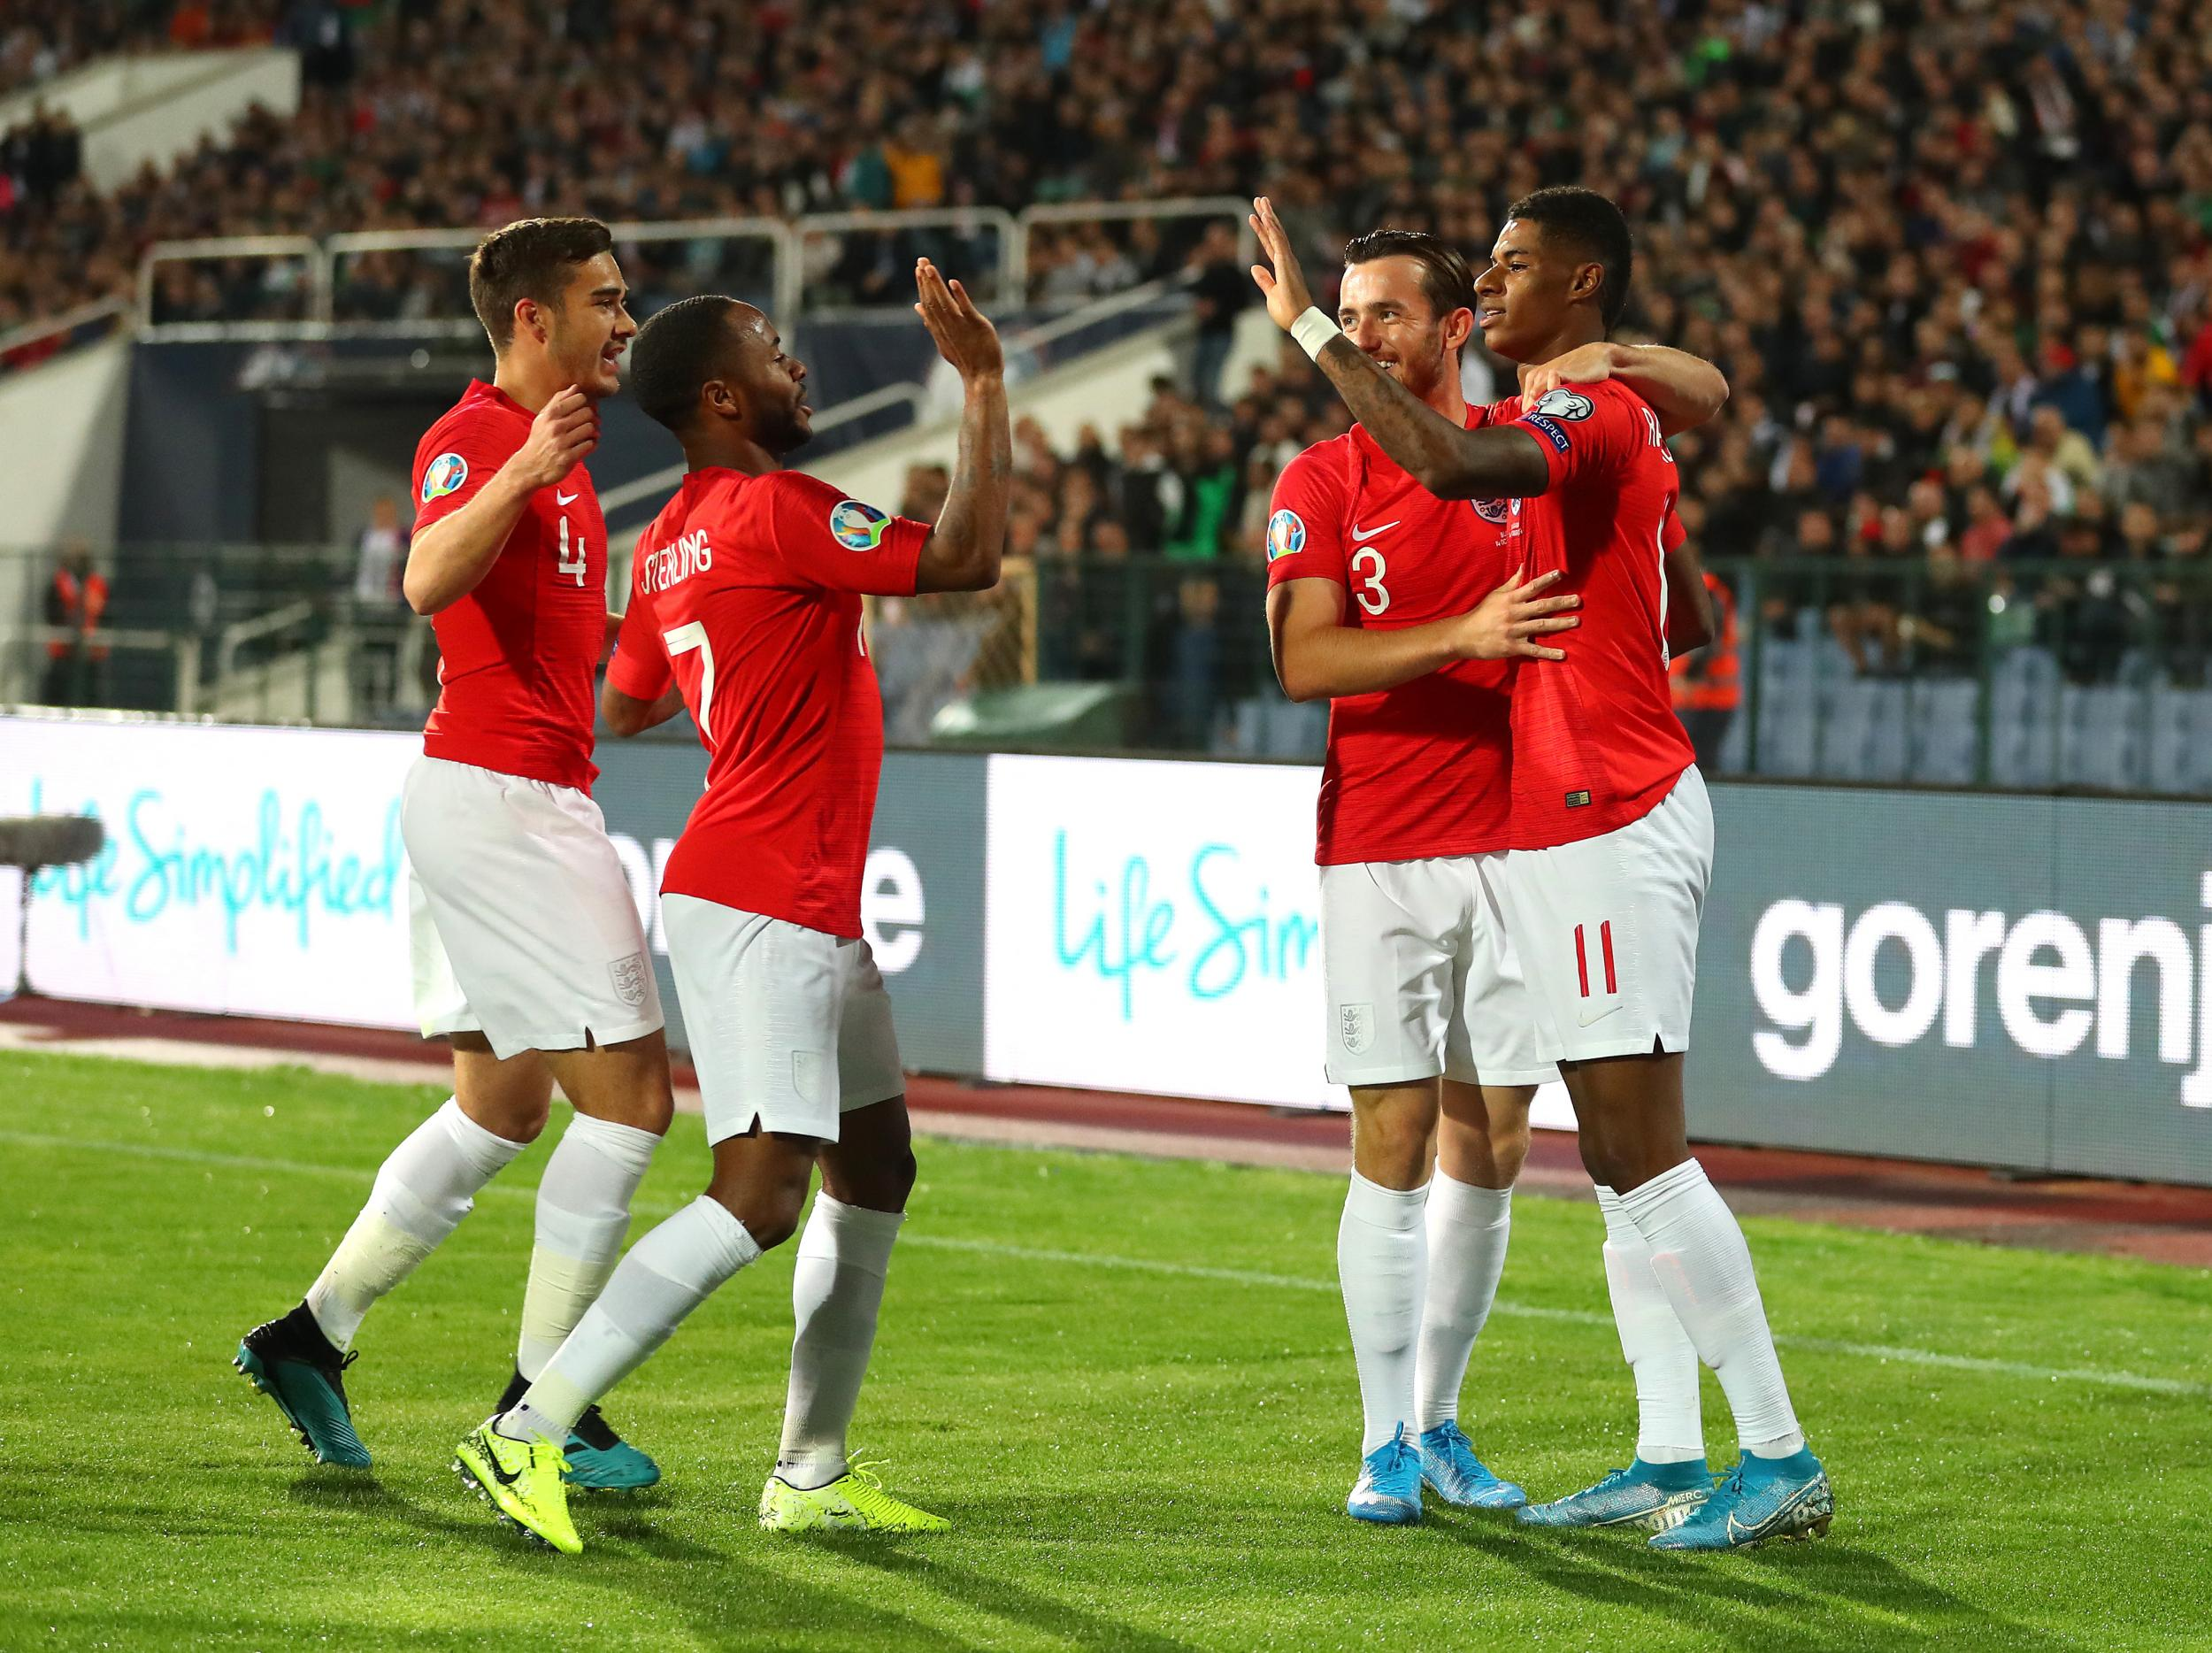 Bulgaria vs England LIVE: Stream, latest score and goal updates from Euro 2020 qualifier